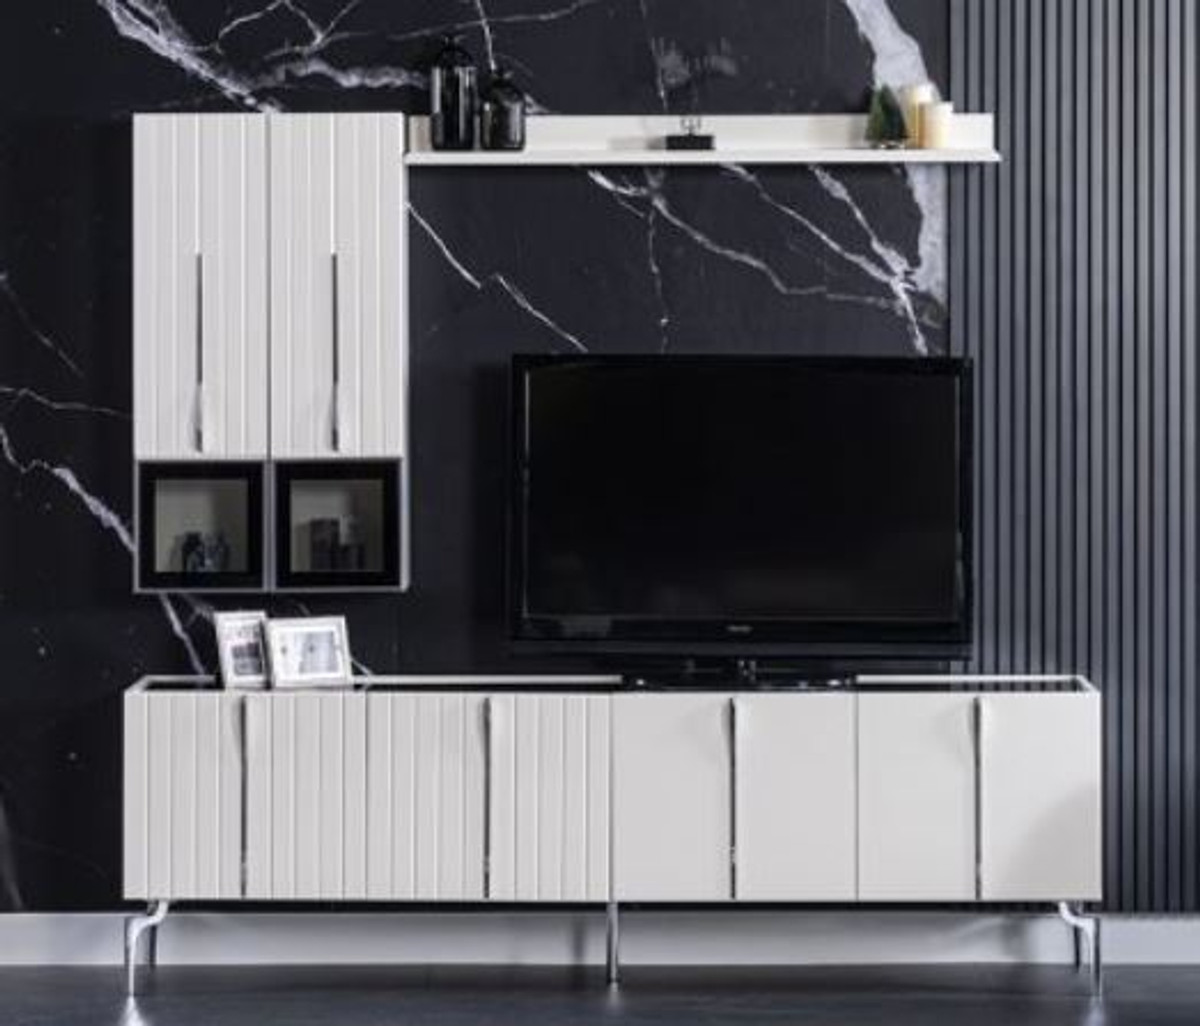 casa padrino luxury art deco tv cabinet white black silver 208 x 44 x h 64 cm noble living room tv cabinet with 4 doors art deco furniture